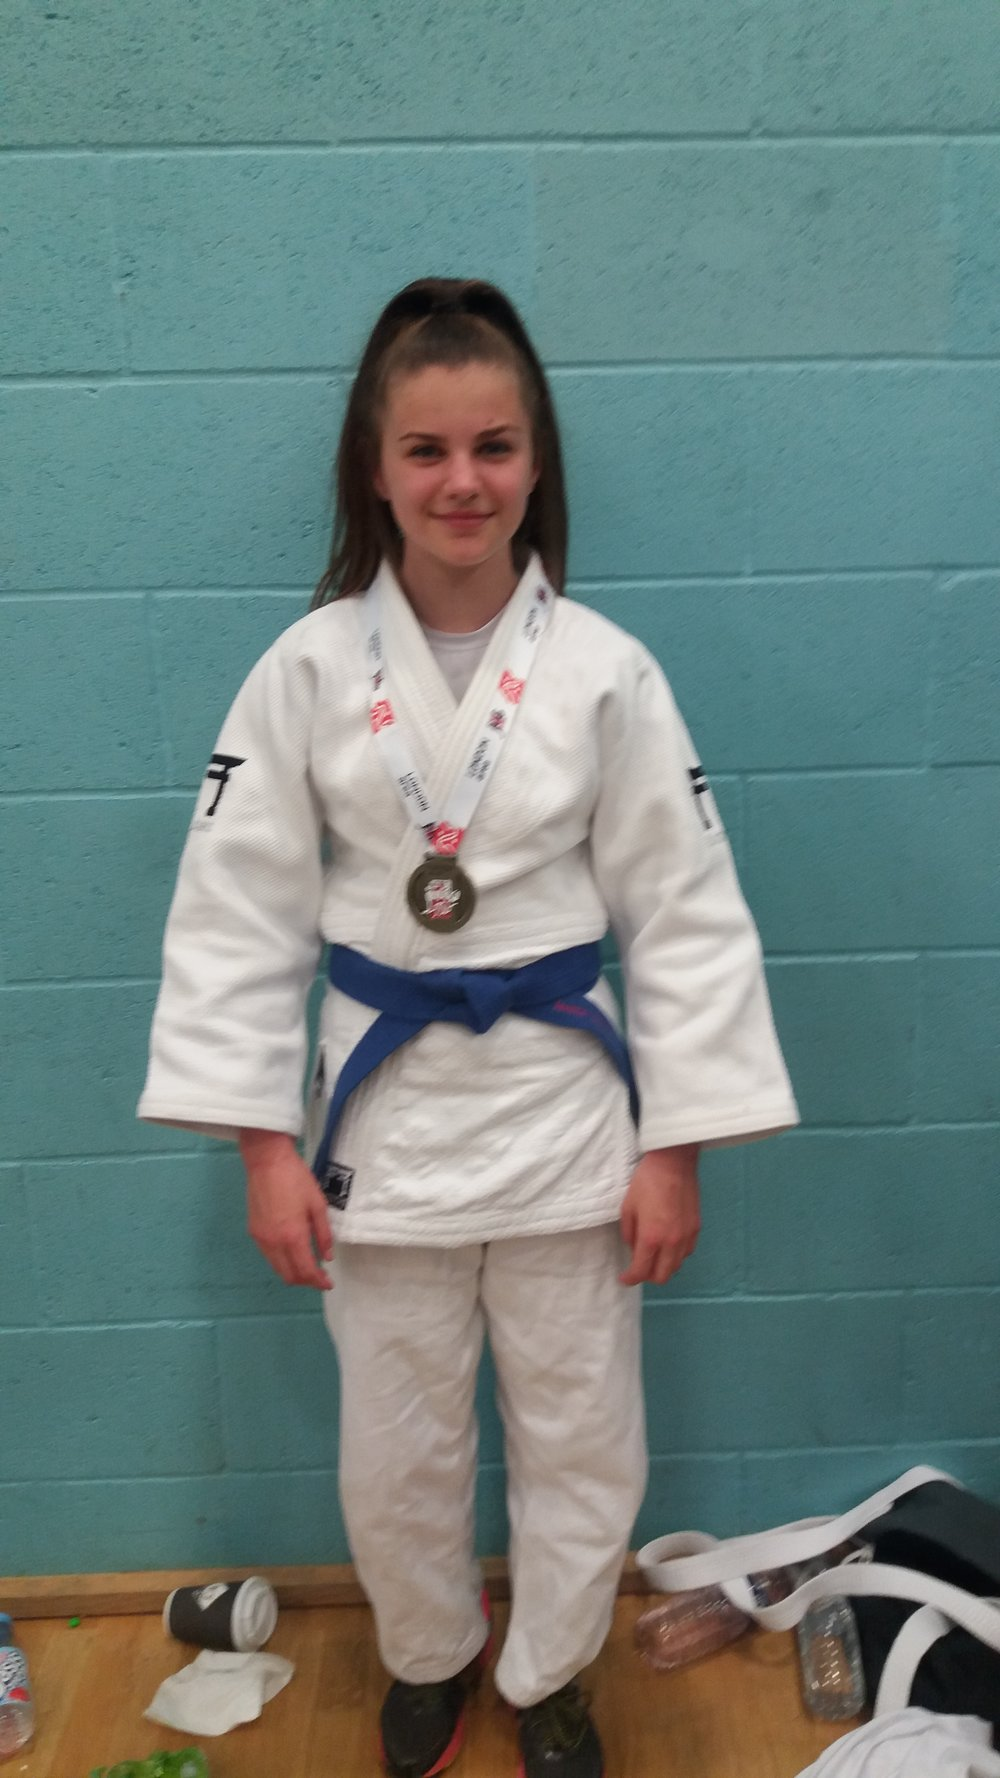 Congratulations to Jasmin Edwards, who fought at the University of East London on Saturday 19th May for the London Open in the U52 (Judo).    Jasmin won a Gold Medal!